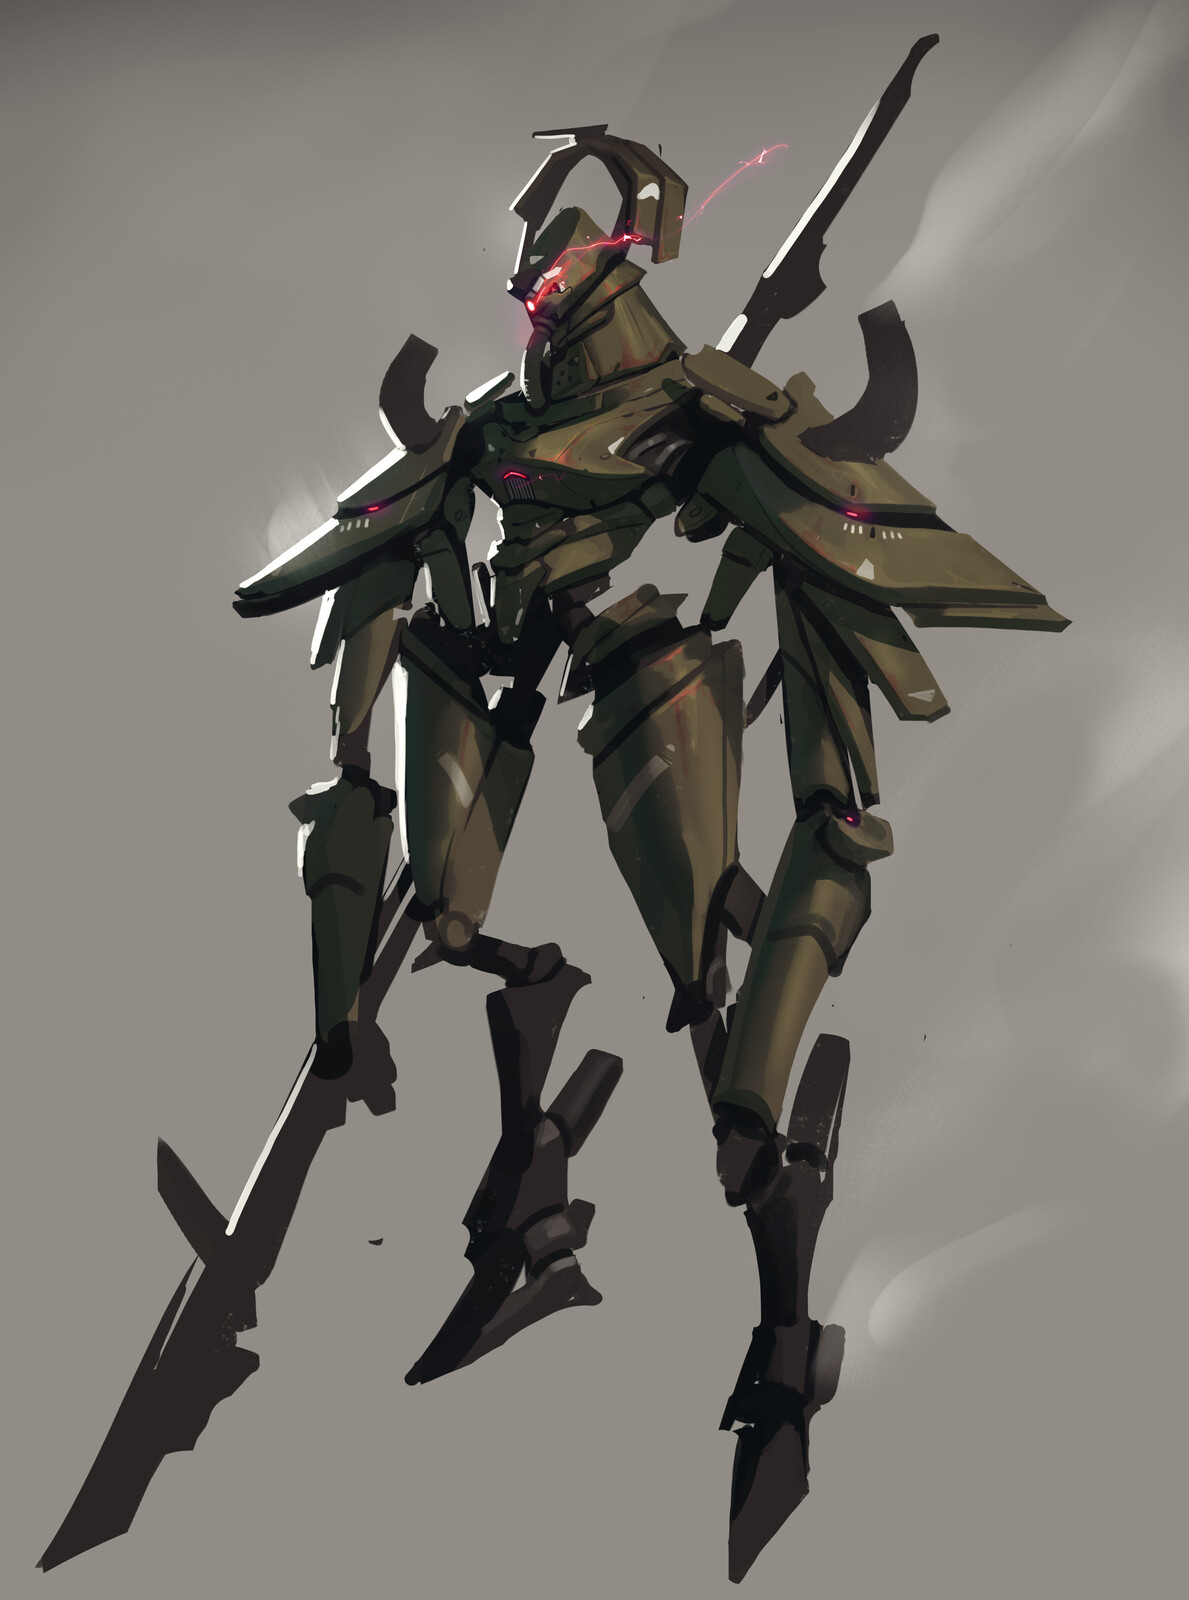 Long Arm Assault Bot